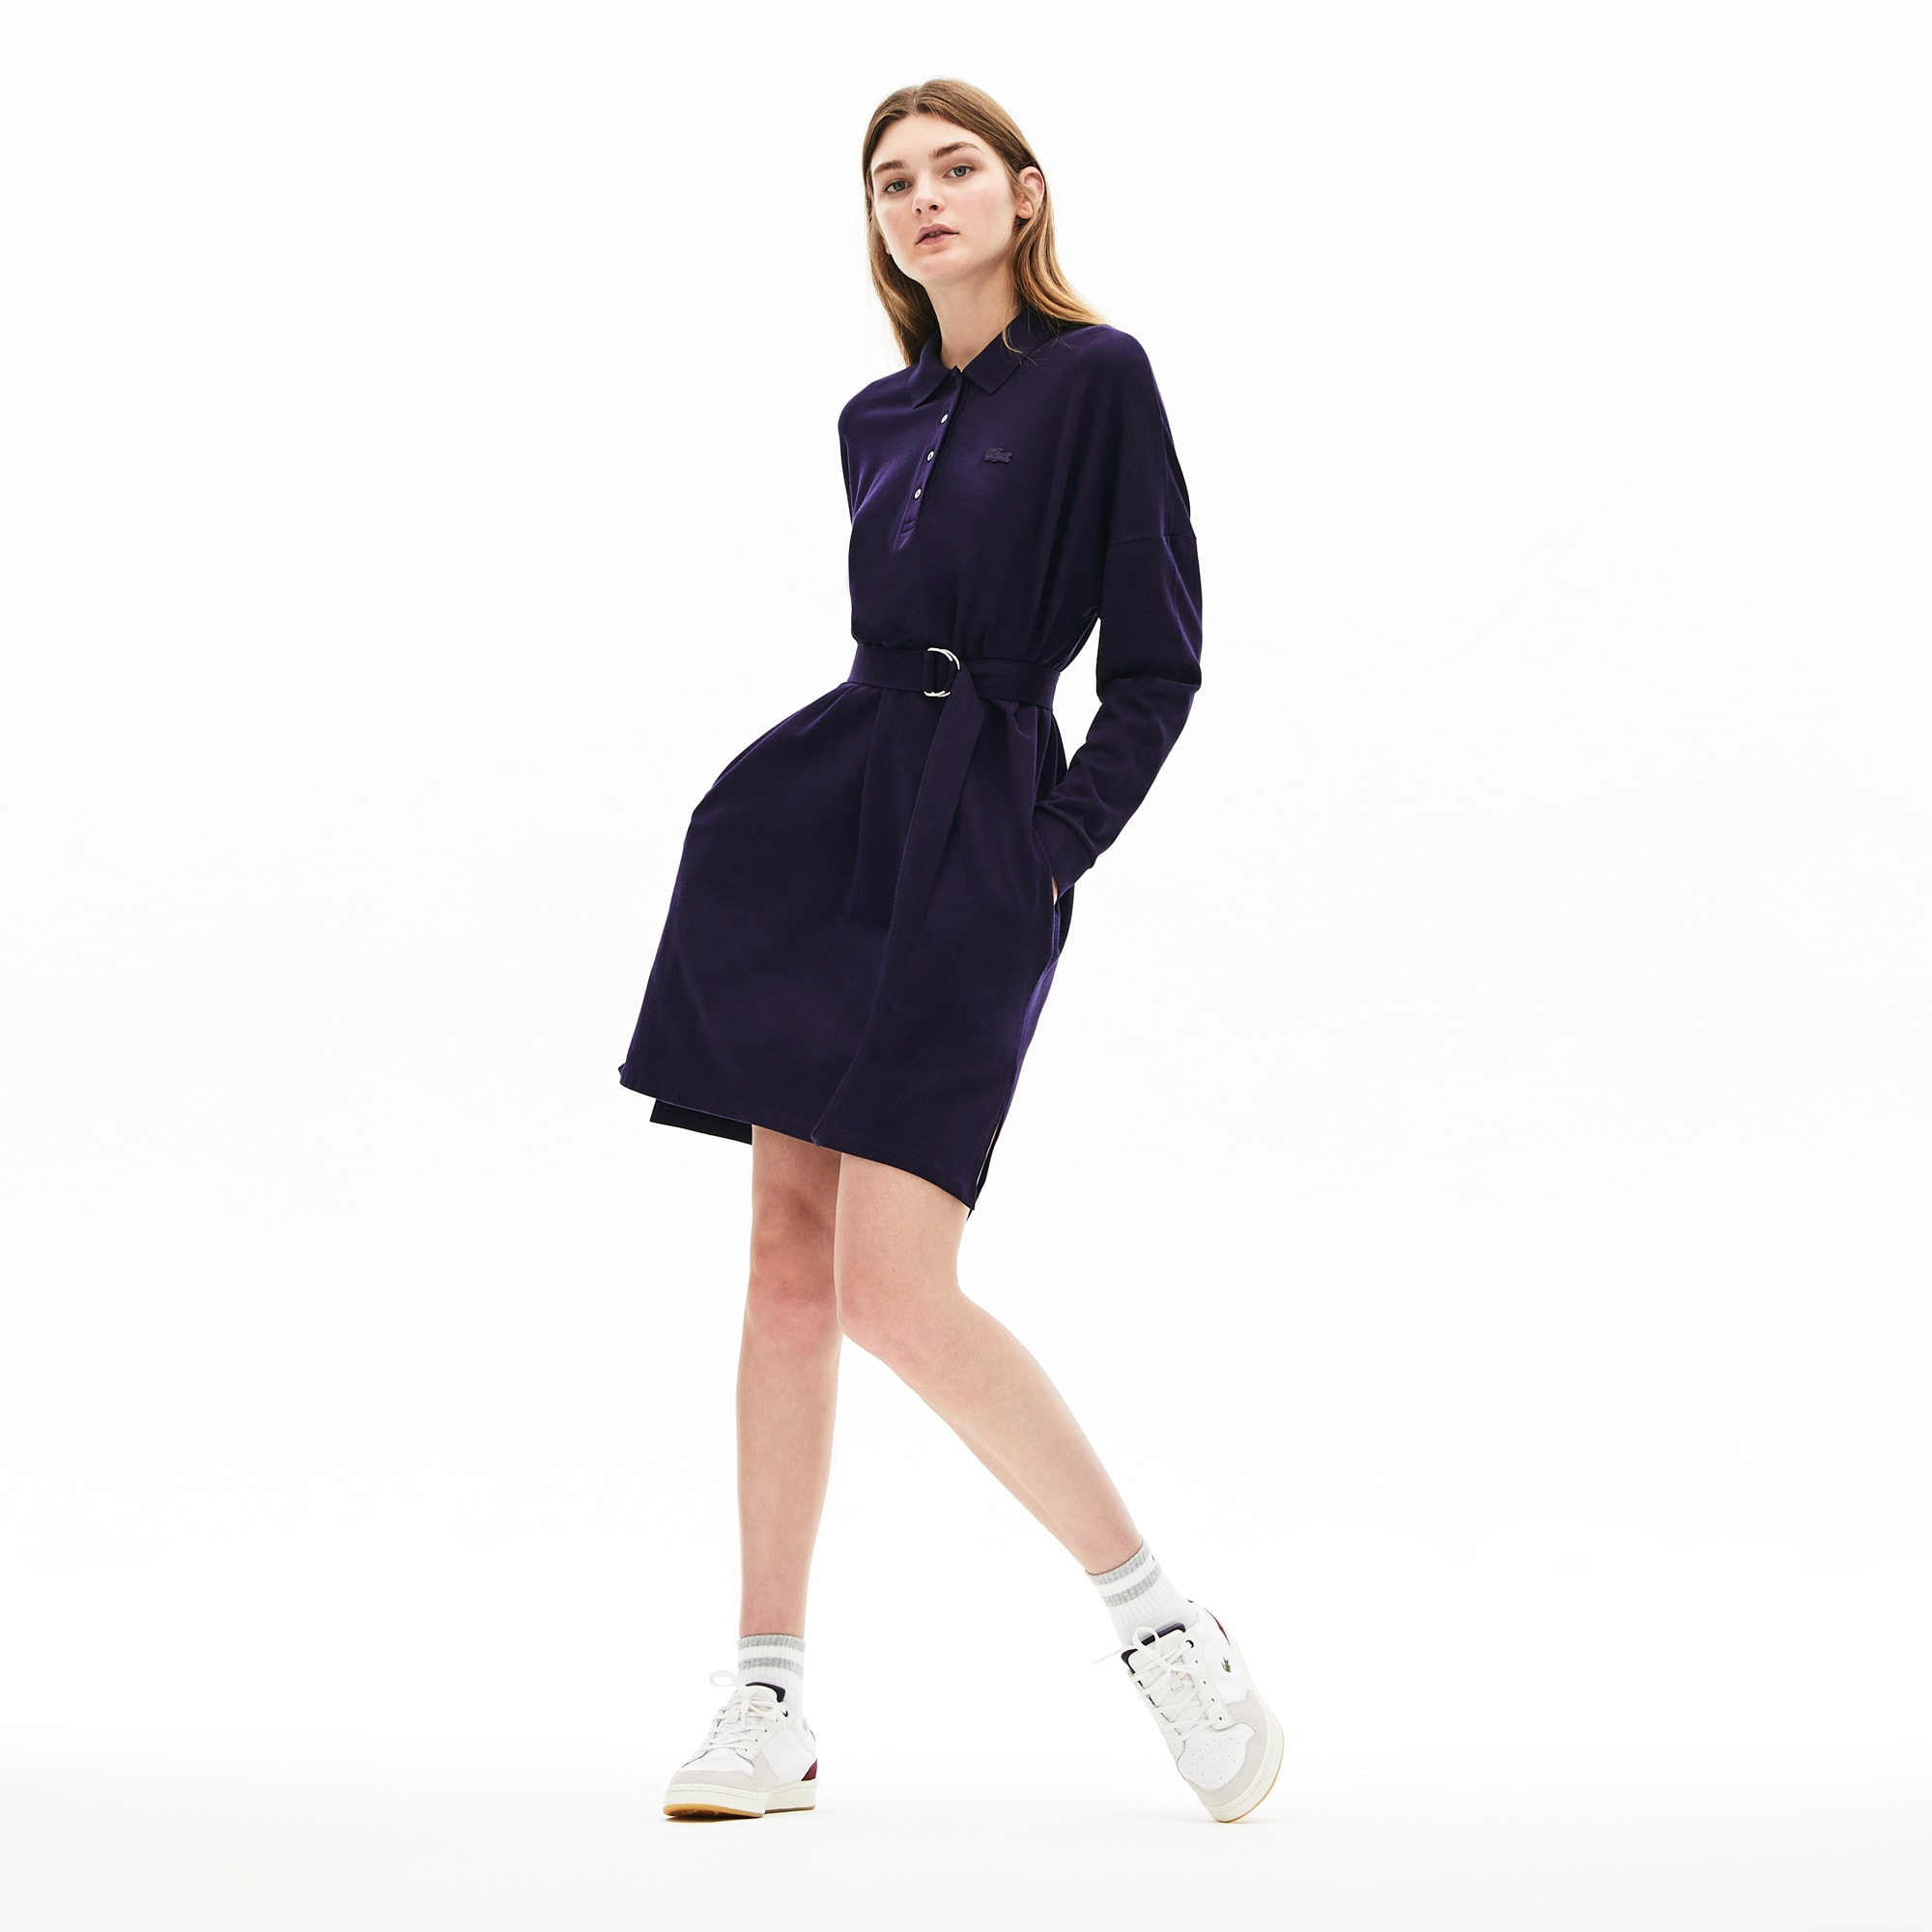 5922b264dedbb9 Robes & Jupes | Vêtements Femme | LACOSTE